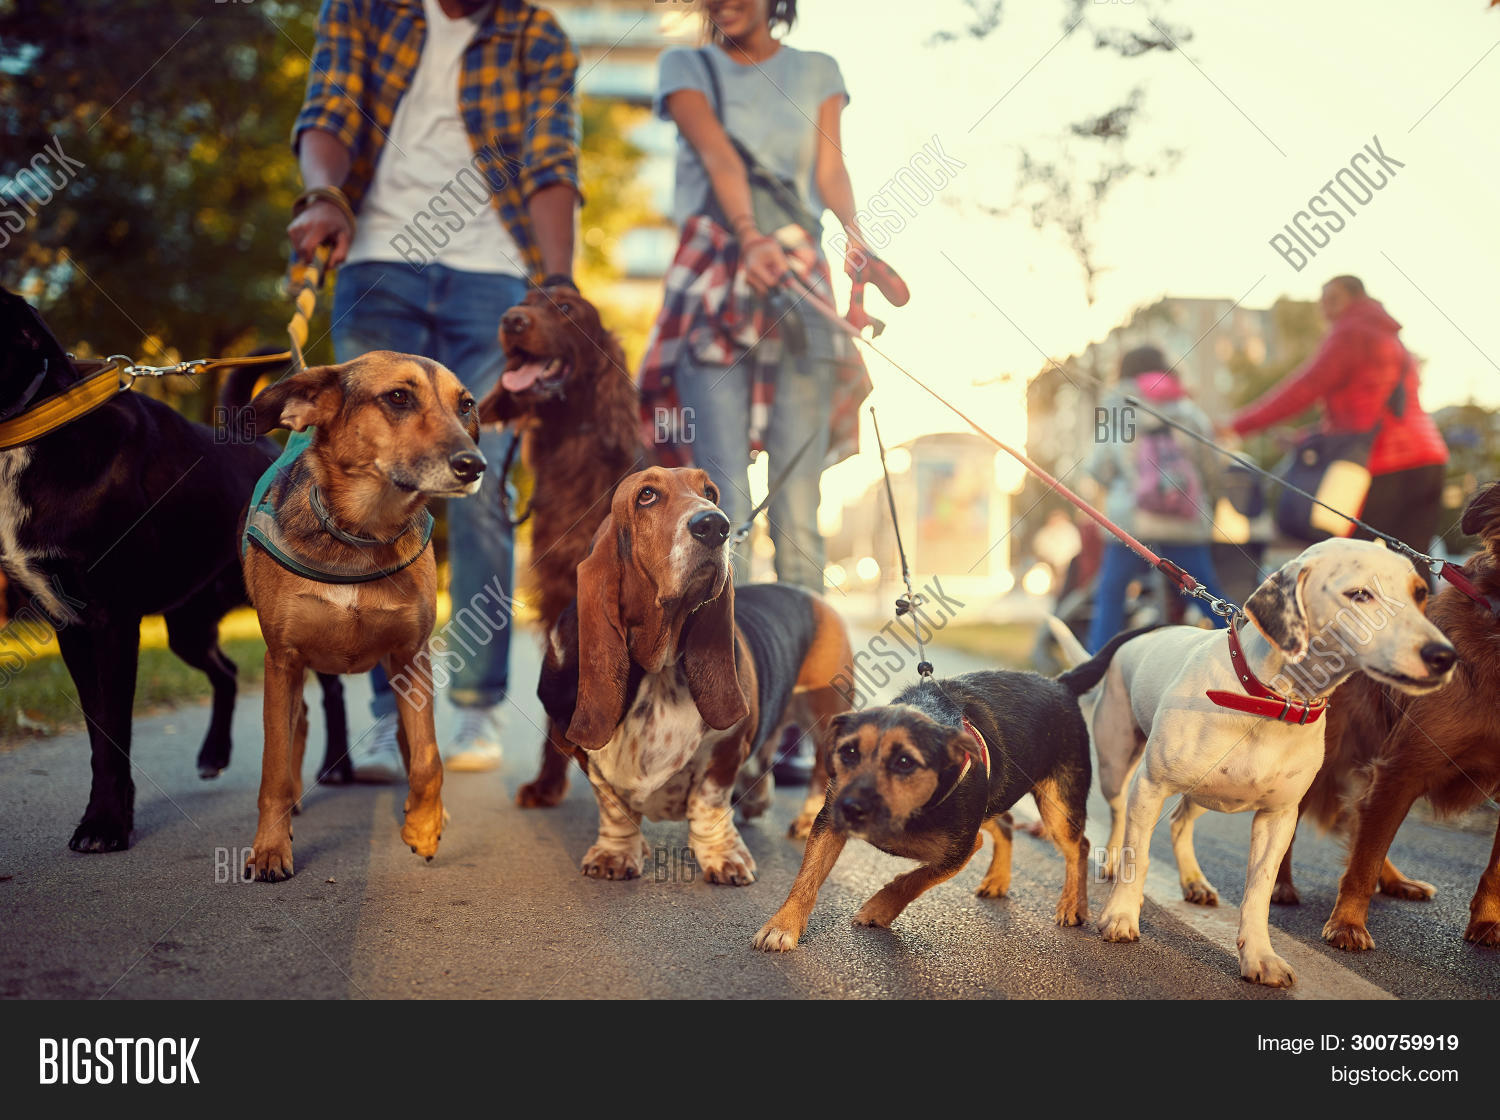 animal,background,beautiful,canine,city,collars,companions,couple,cute,dog,dogs,dry,enjoy,friend,funny,group,happy,jack,lead,leash,leather,lifestyle,love,mammal,man,nature,outdoor,outdoors,pack,people,person,pet,pets,professional,rescue,russell,service,sidewalk,smiling,street,summer,terrier,urban,walk,walker,walkers,woman,young